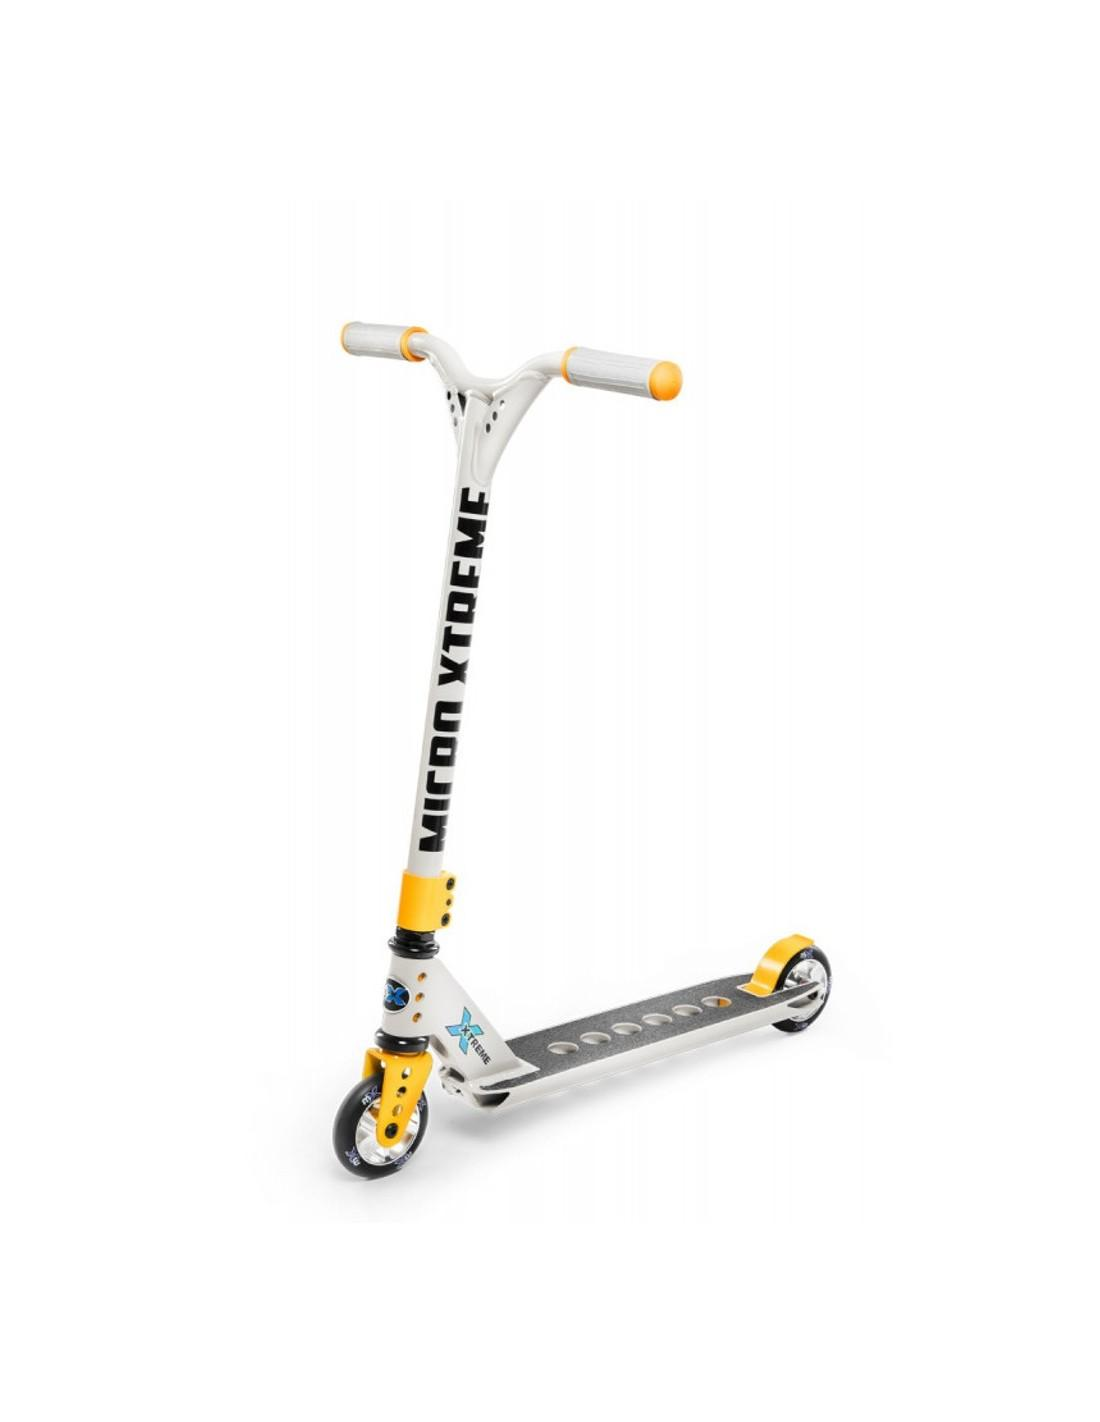 Micro Scooter MX Trixx 2.0 100 mm Stuntscooter, grey yellow Scooterreifen - PU Reifen, Scooterart - Stuntscooter, Scooterfarbe - Grau,